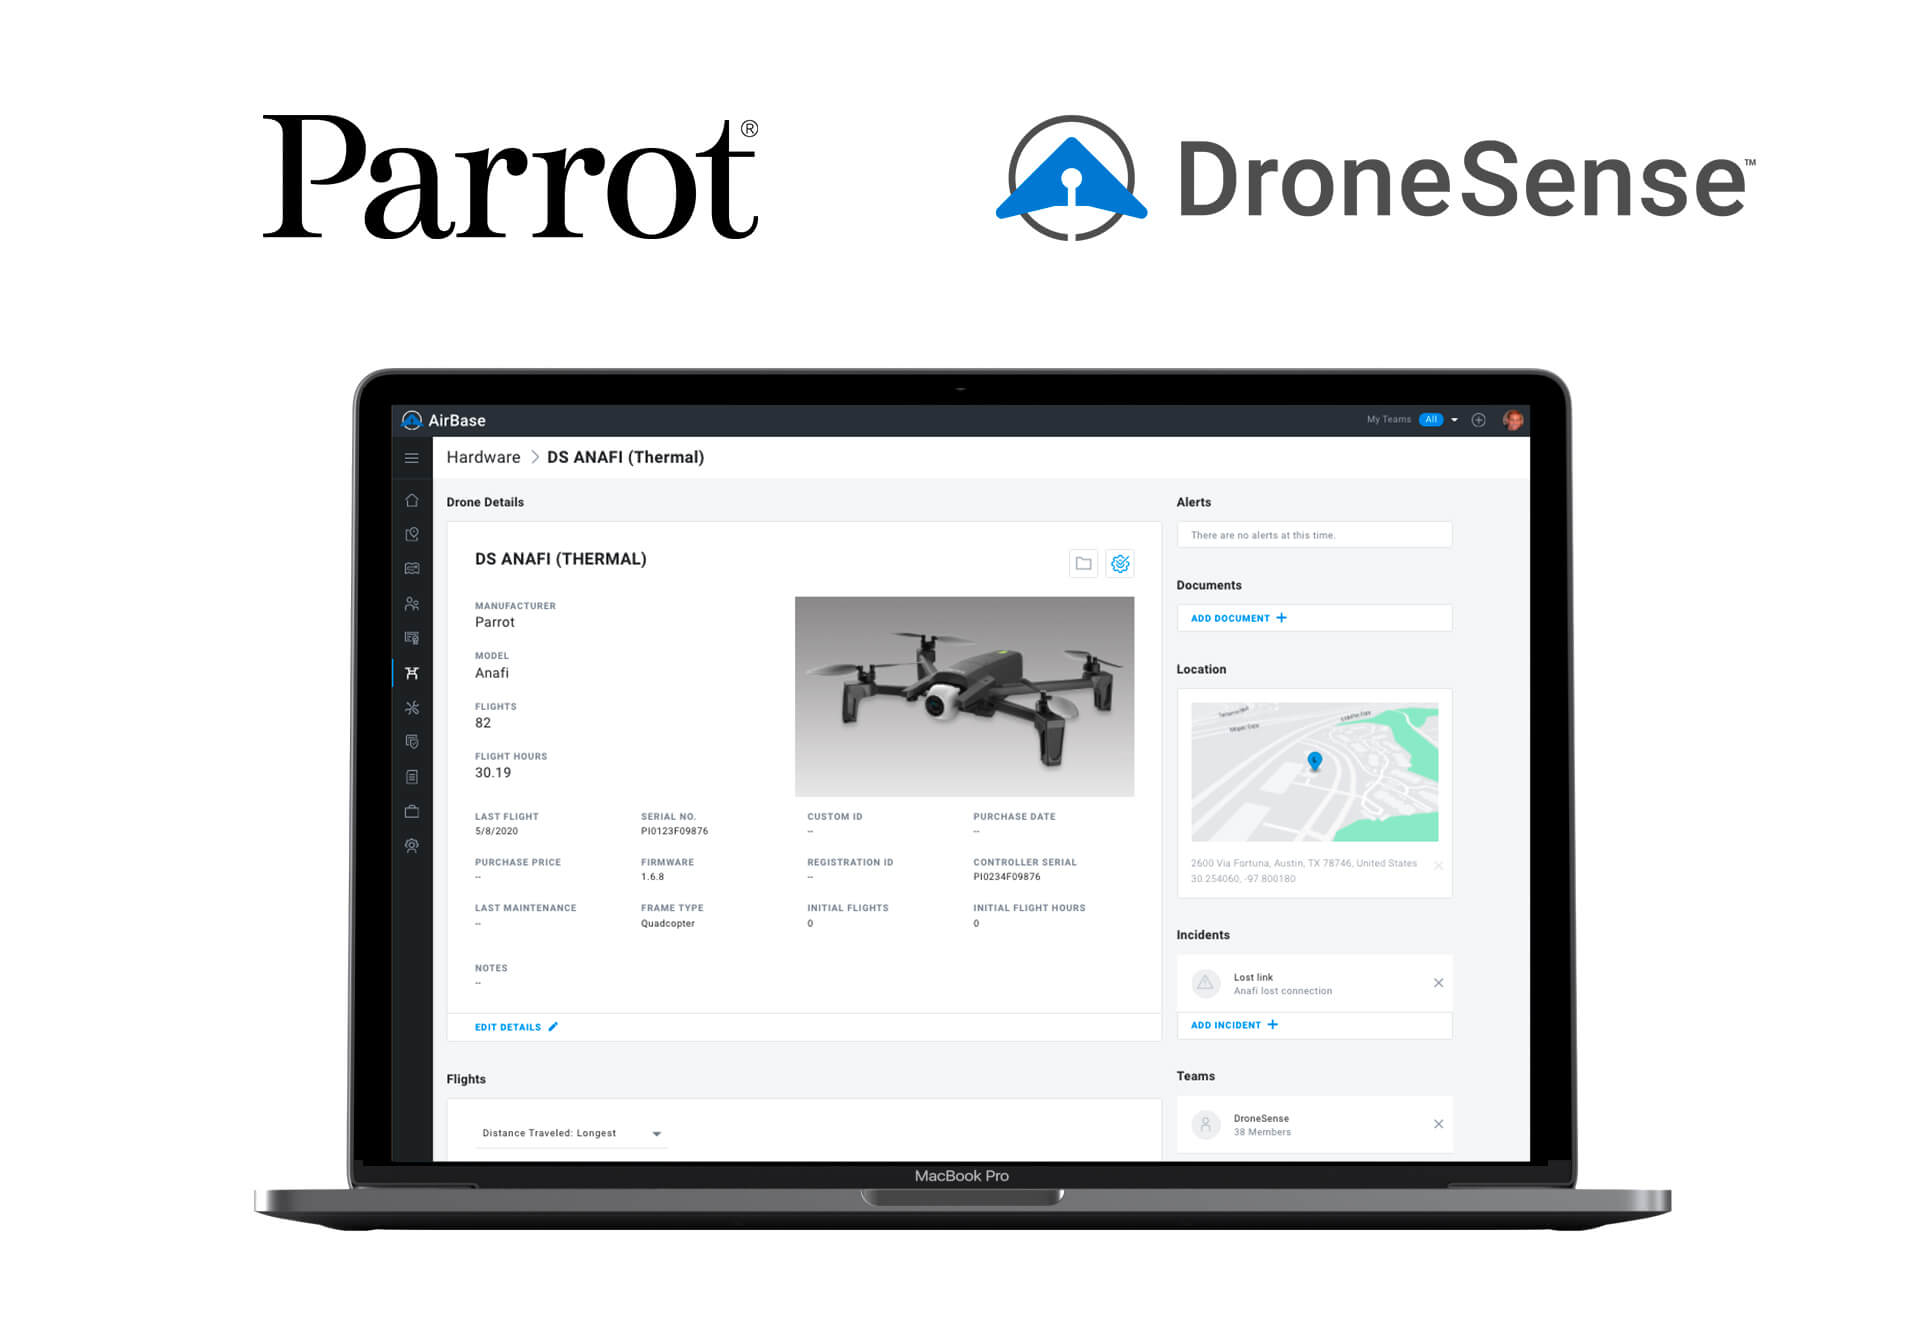 Parrot and DroneSense partner to better equip public safety UAS programs - sUAS News - The Business of Drones